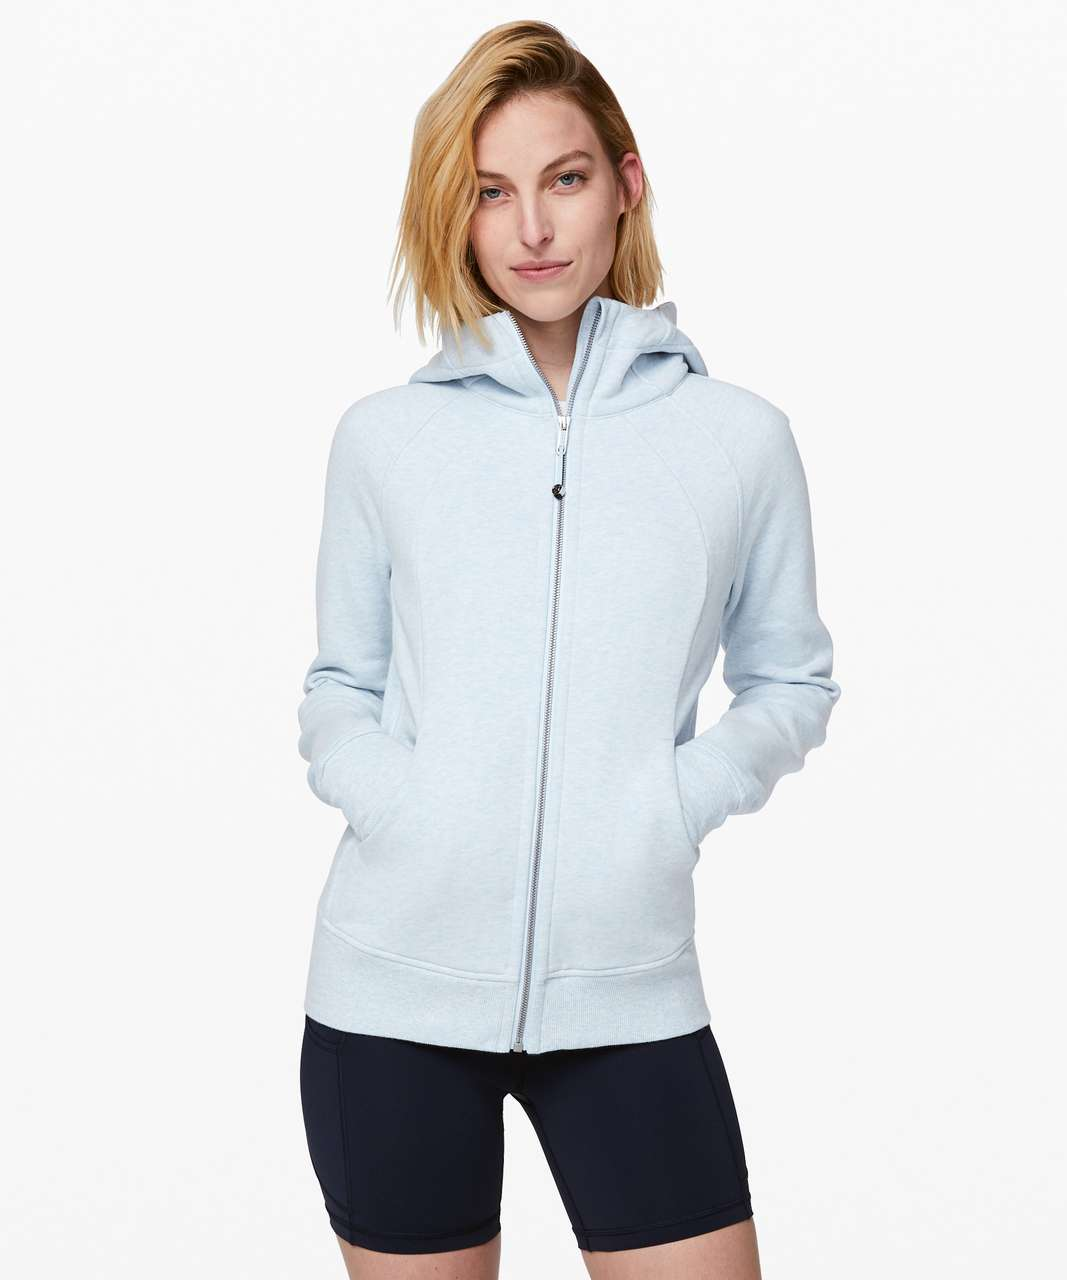 Lululemon Scuba Hoodie *Light Cotton Fleece - Heathered Breezy